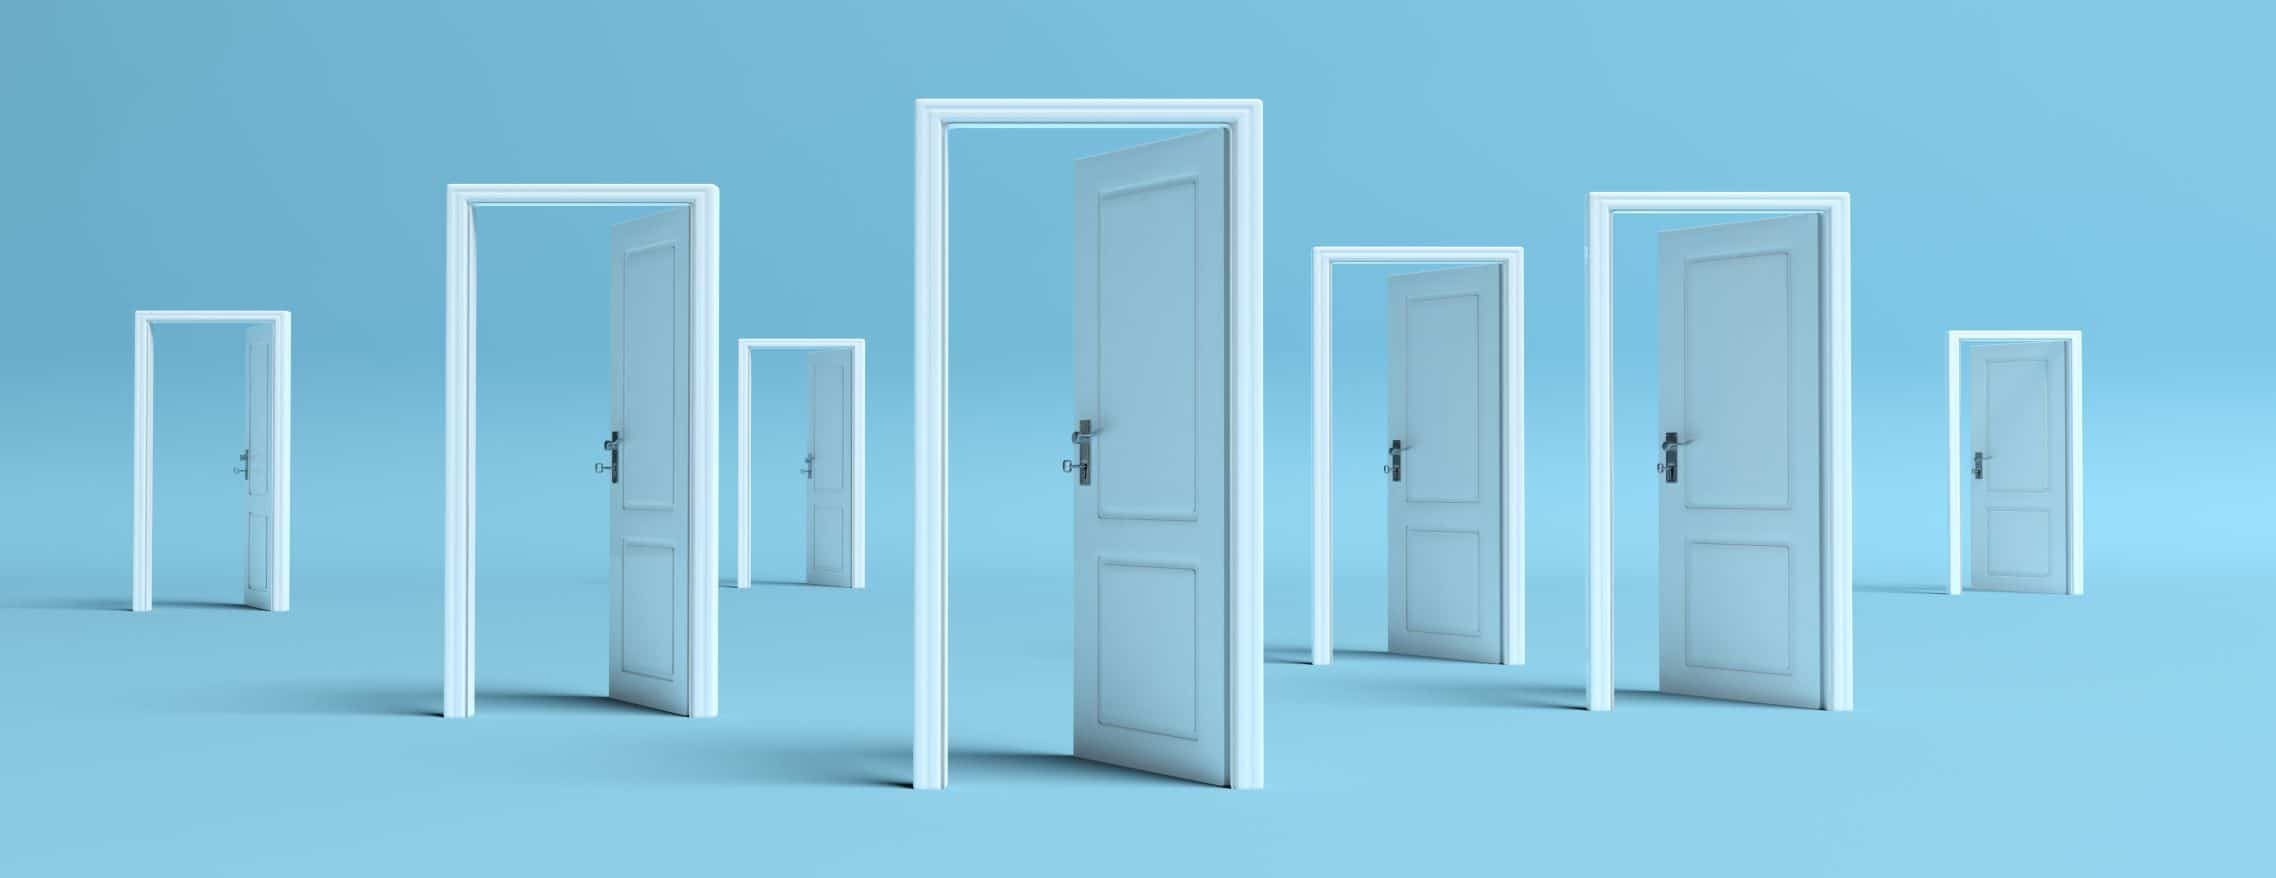 Stepping stone jobs can open doors